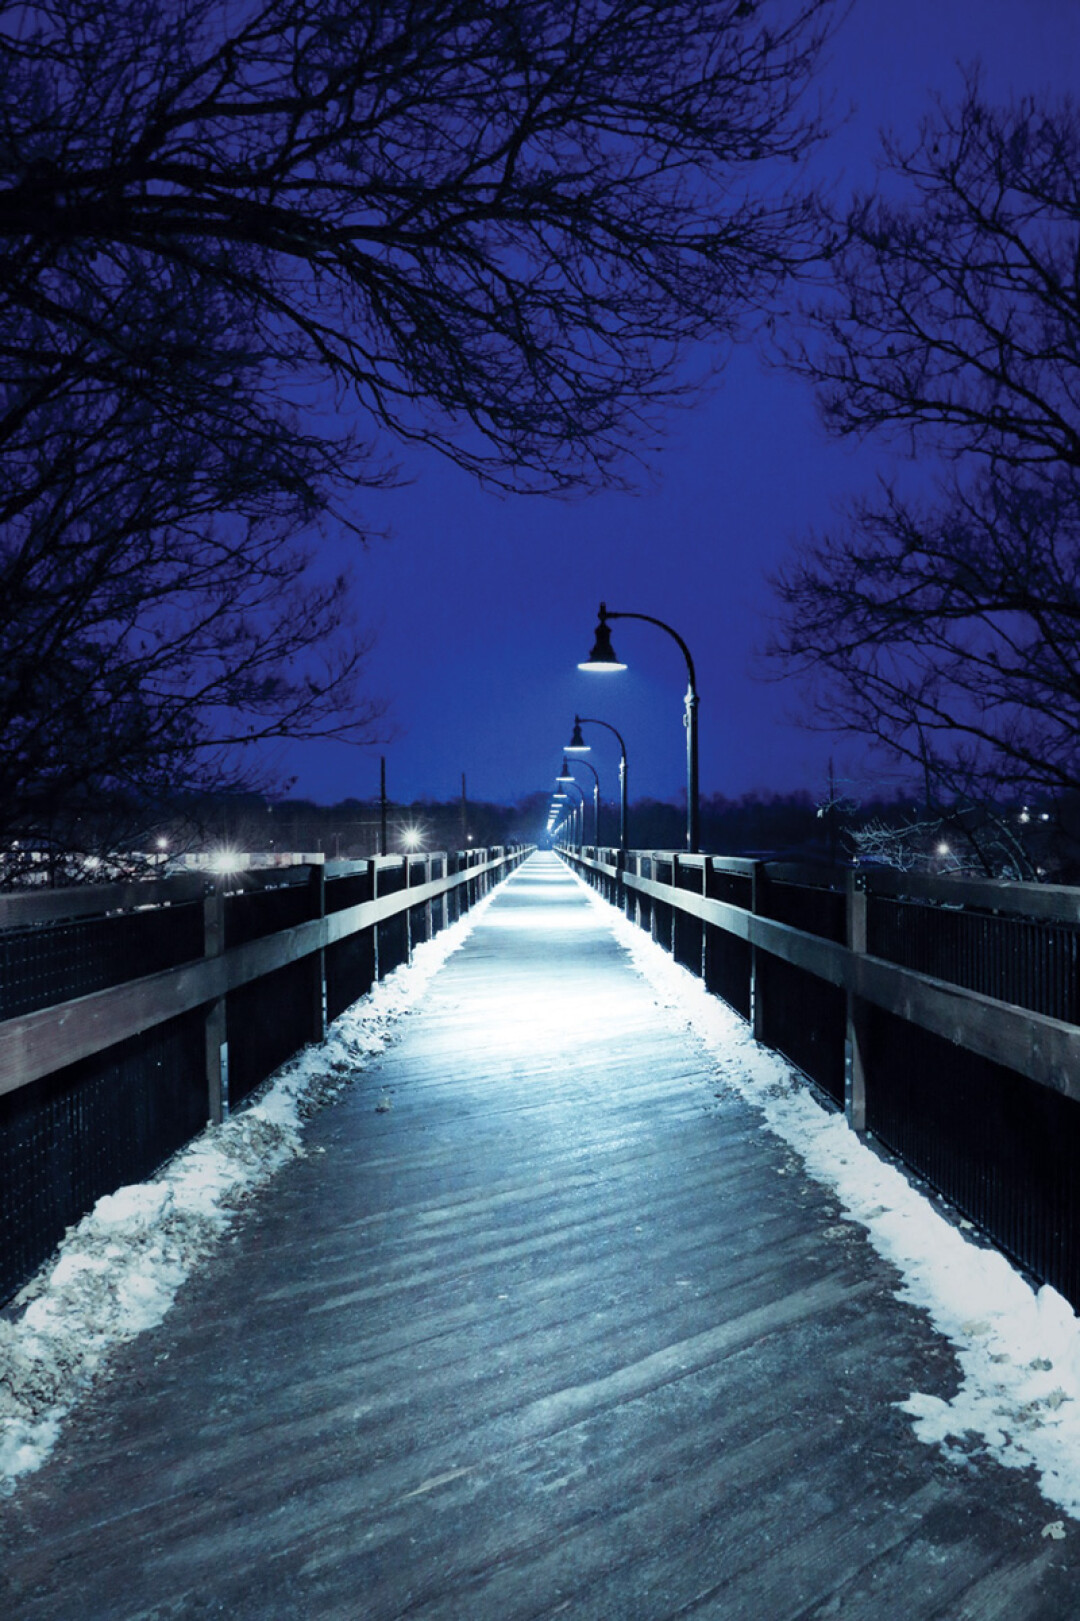 HIGH AND LONESOME. A recent shot of the High Bridge in Eau Claire on a chilly night. The new-ish pedestrian bridge has continued to be a popular spot for walkers and sightseers throughout winter.